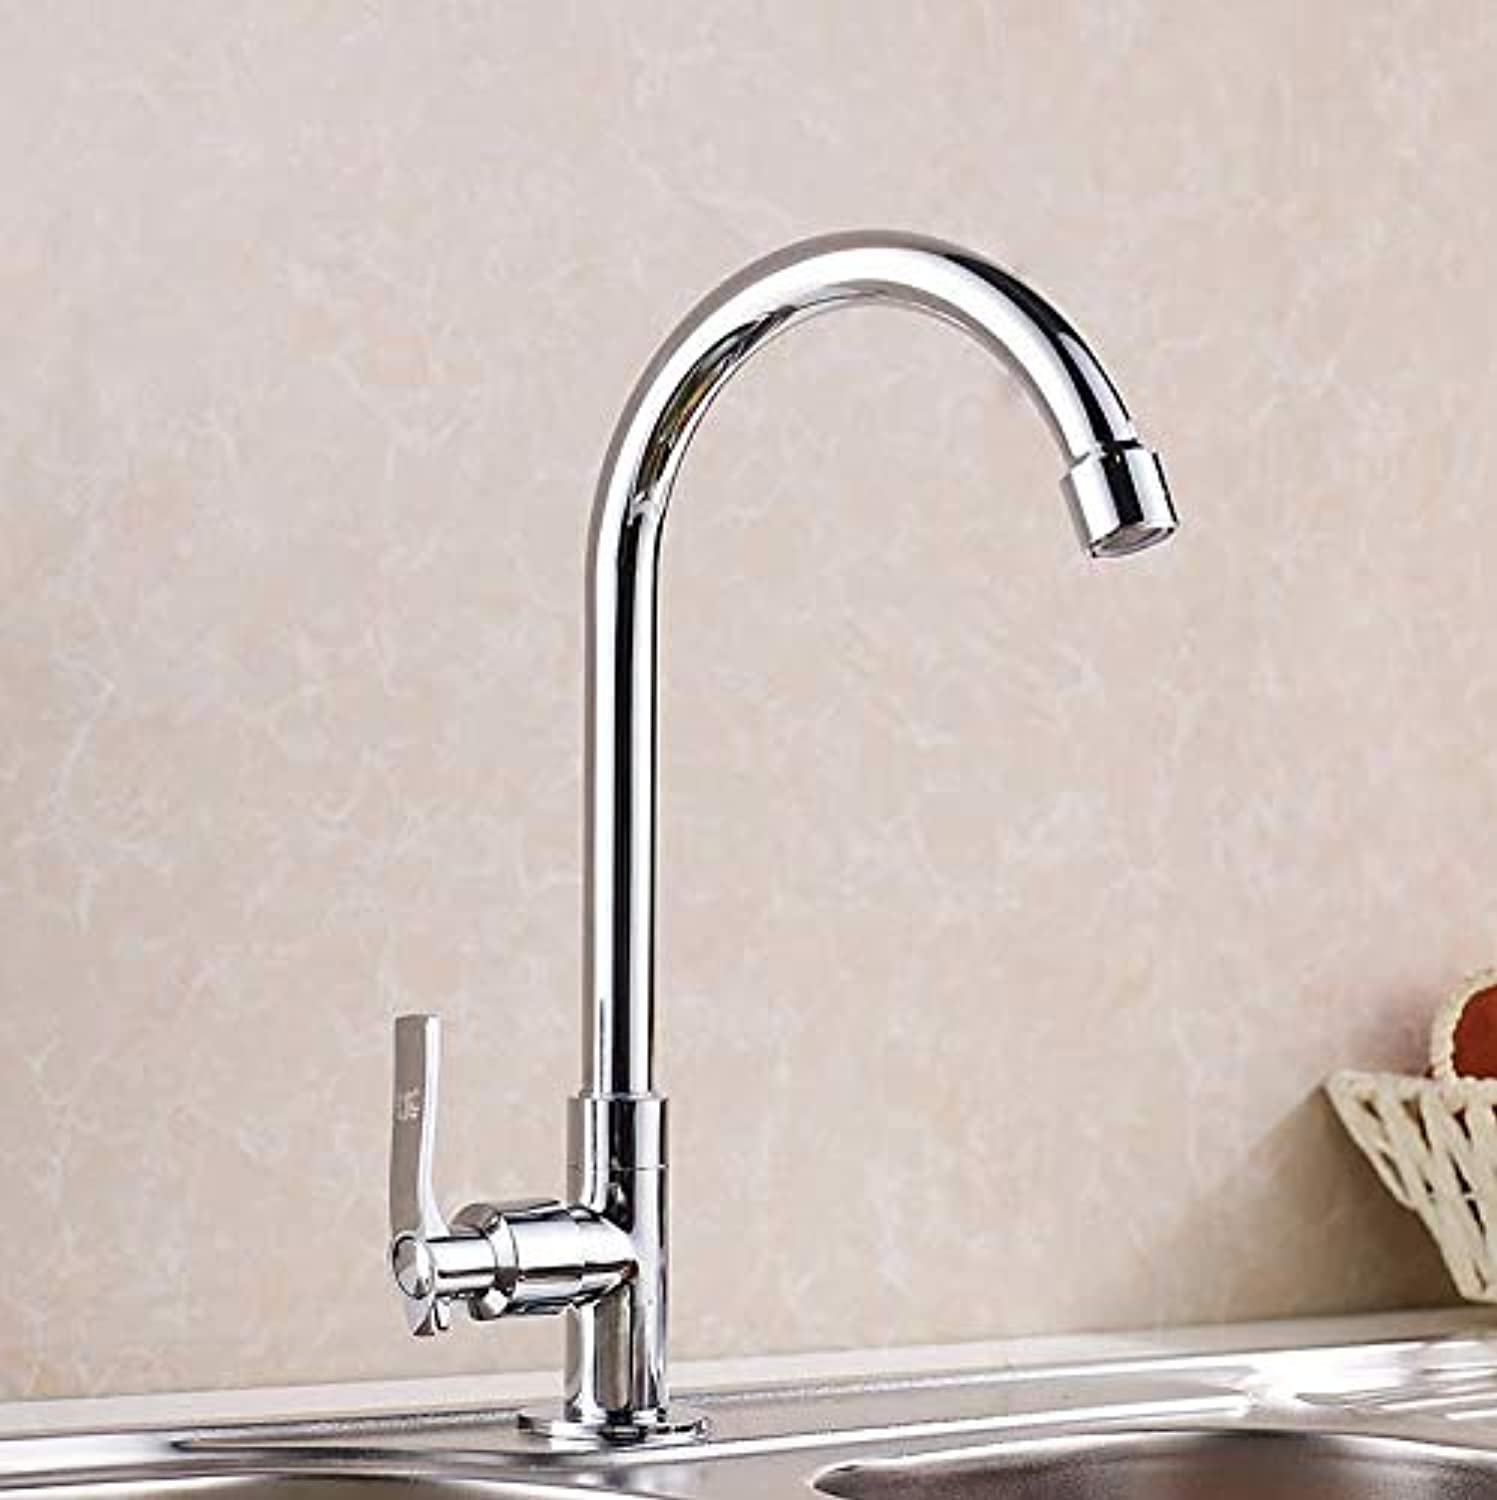 Single Cold Faucet Universal redating Copper Kitchen Sink Sink Faucet Sink Balcony Laundry Pool Faucet